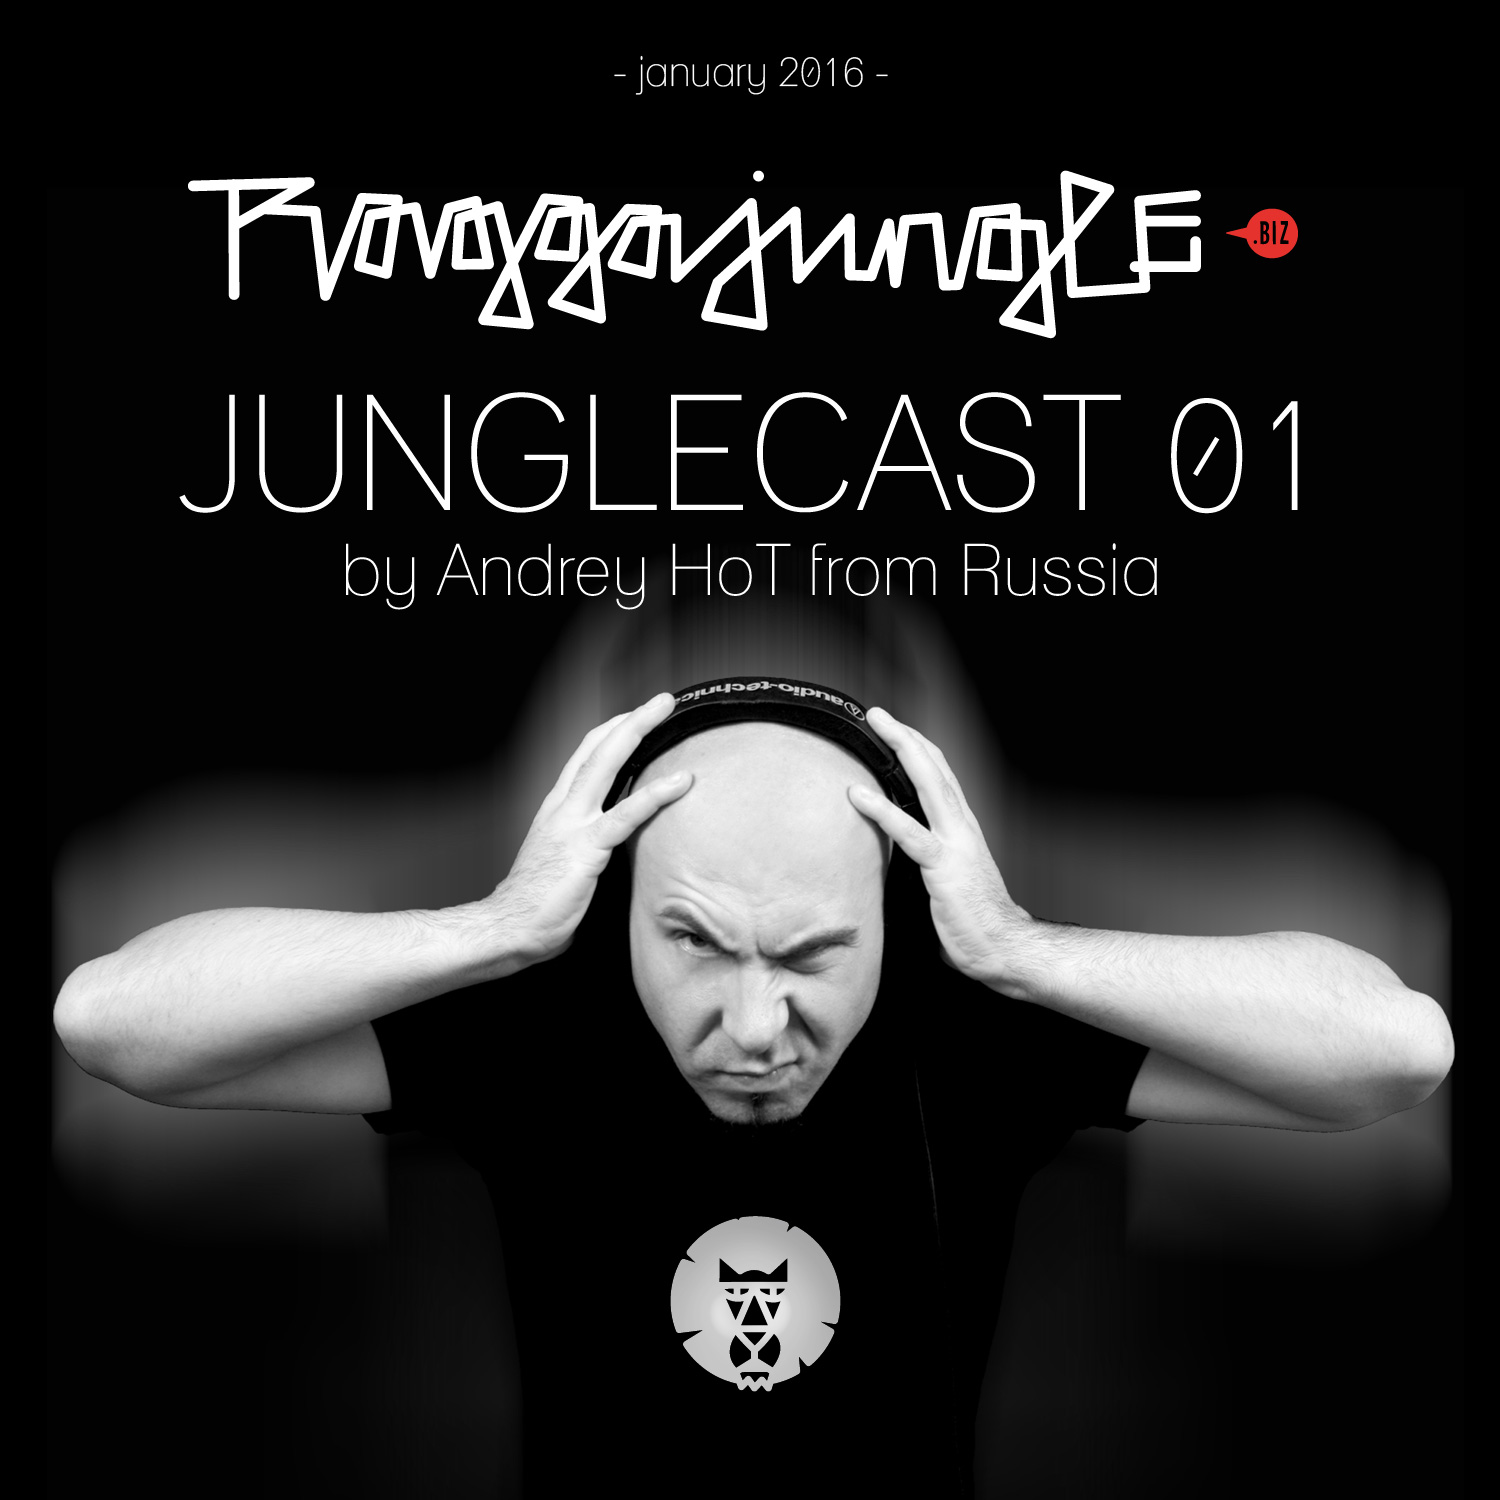 junglecast-01-hot1